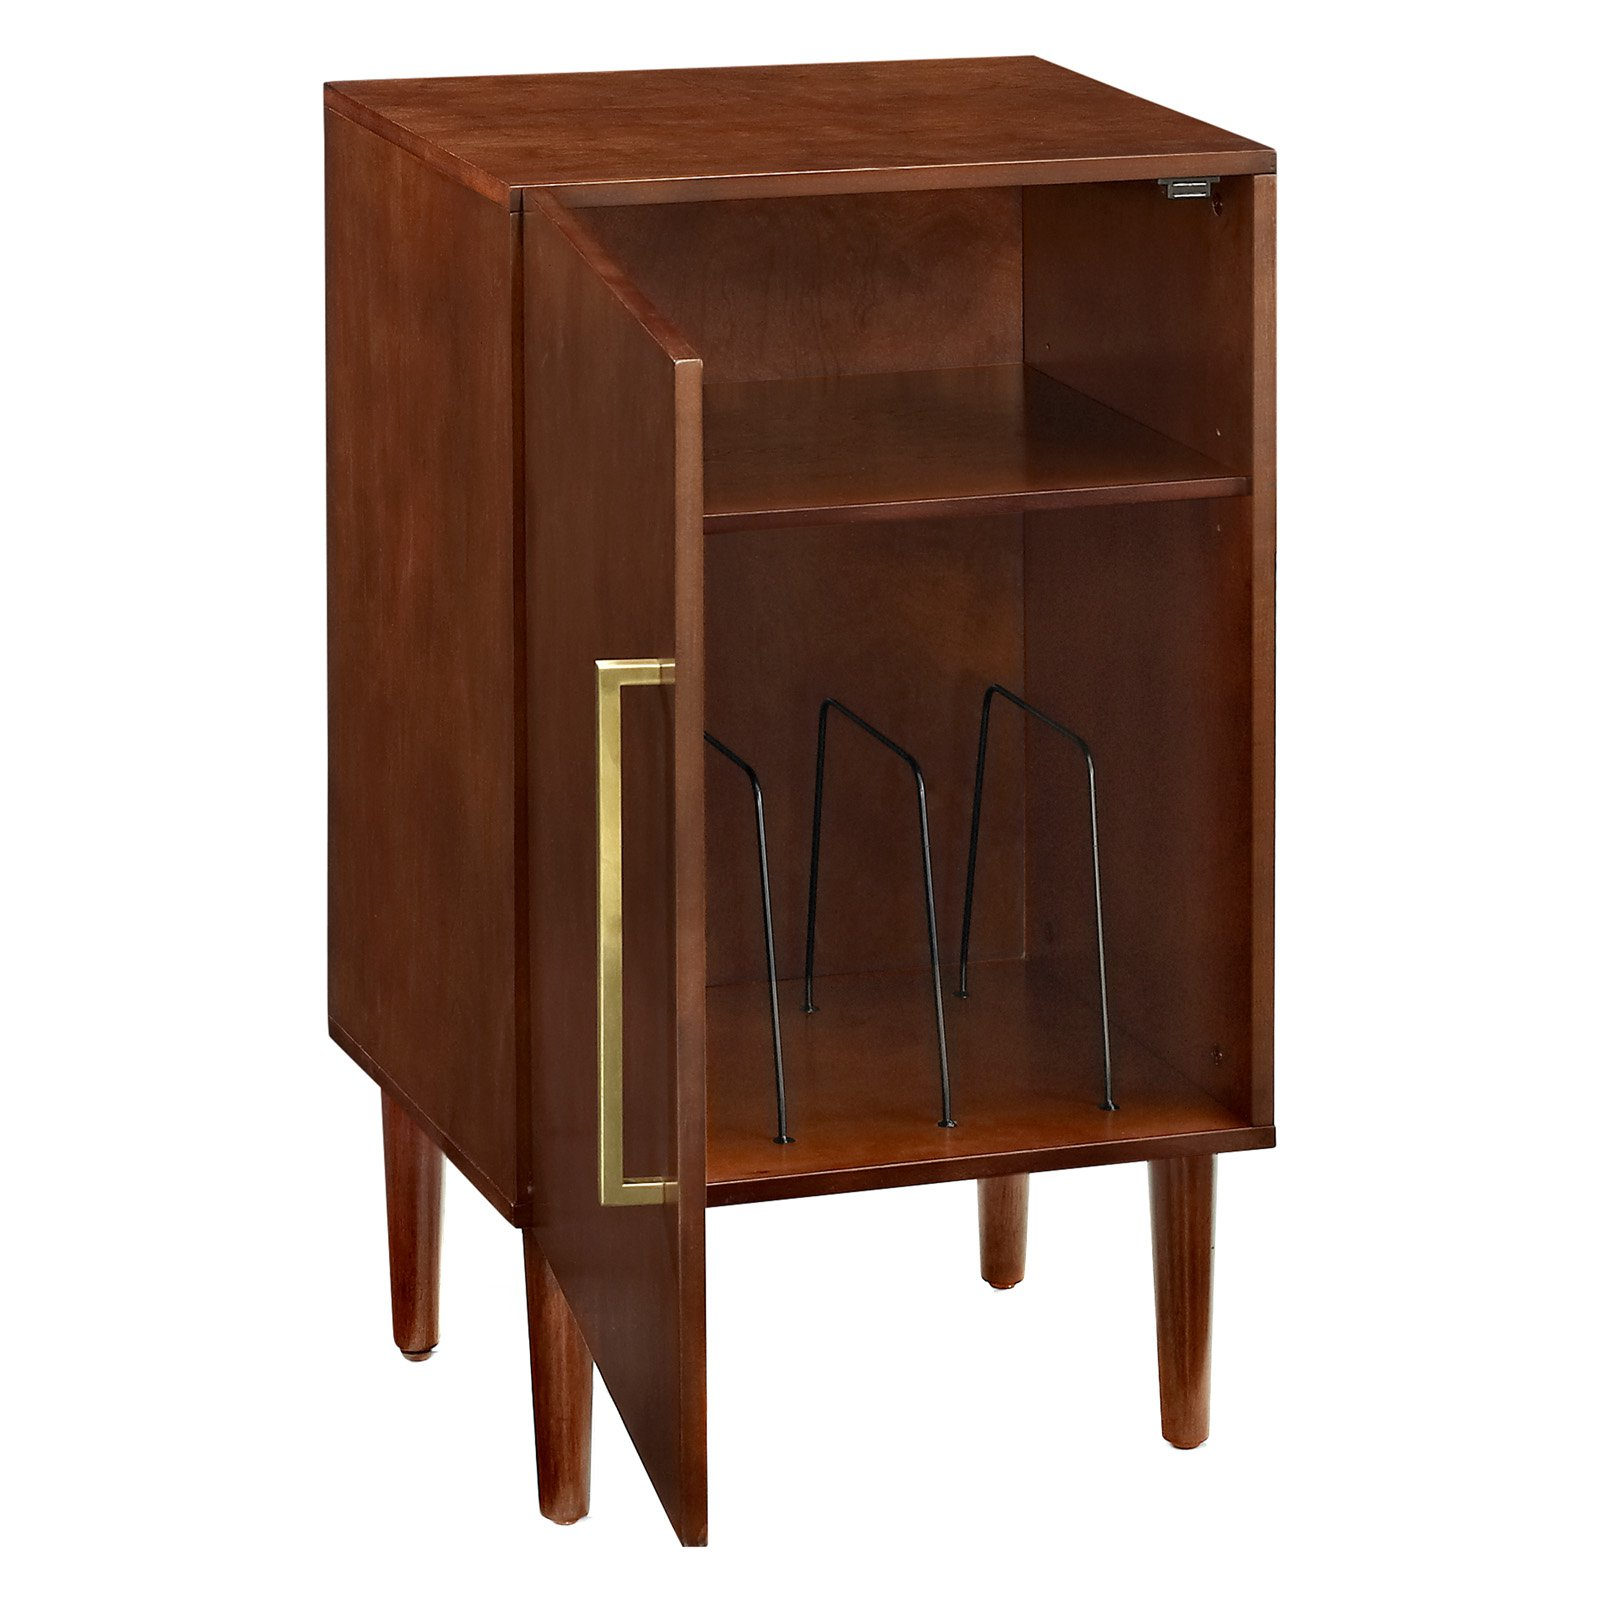 EVERETT RECORD PLAYER STAND IN MAHOGANY FINISH